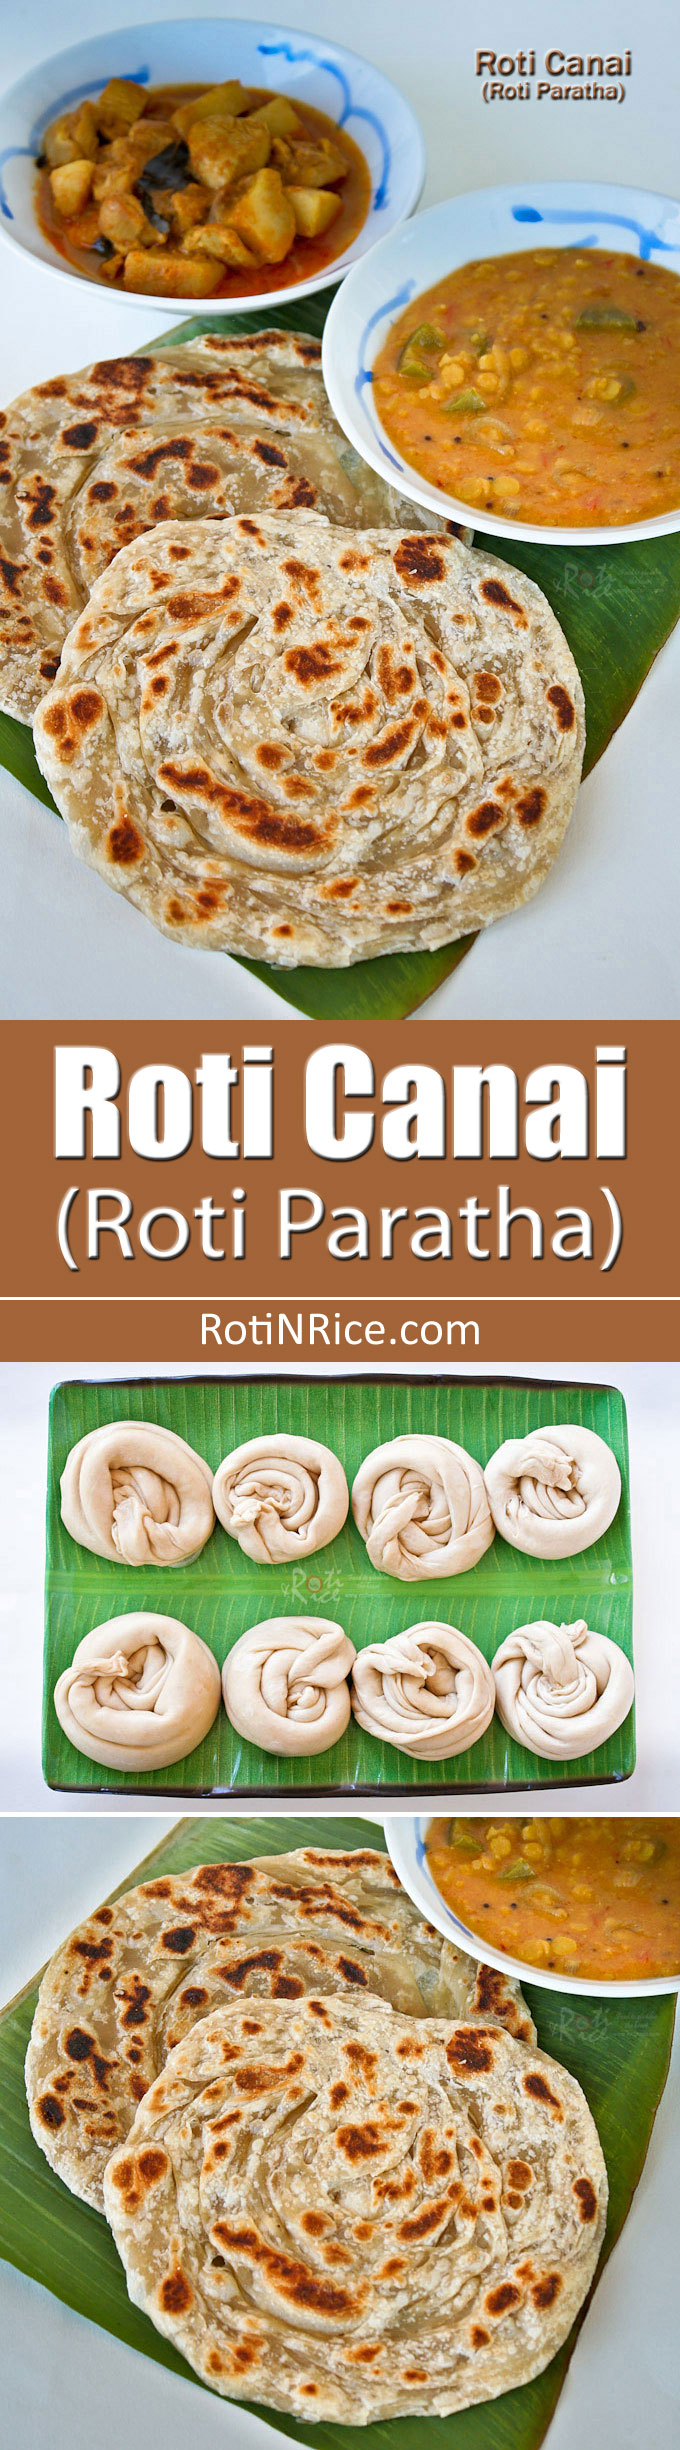 Crispy and fluffy homemade Roti Canai (Roti Paratha) with step-by-step instructions. Delicious eaten with dhal and chicken curry. | RotiNRice.com